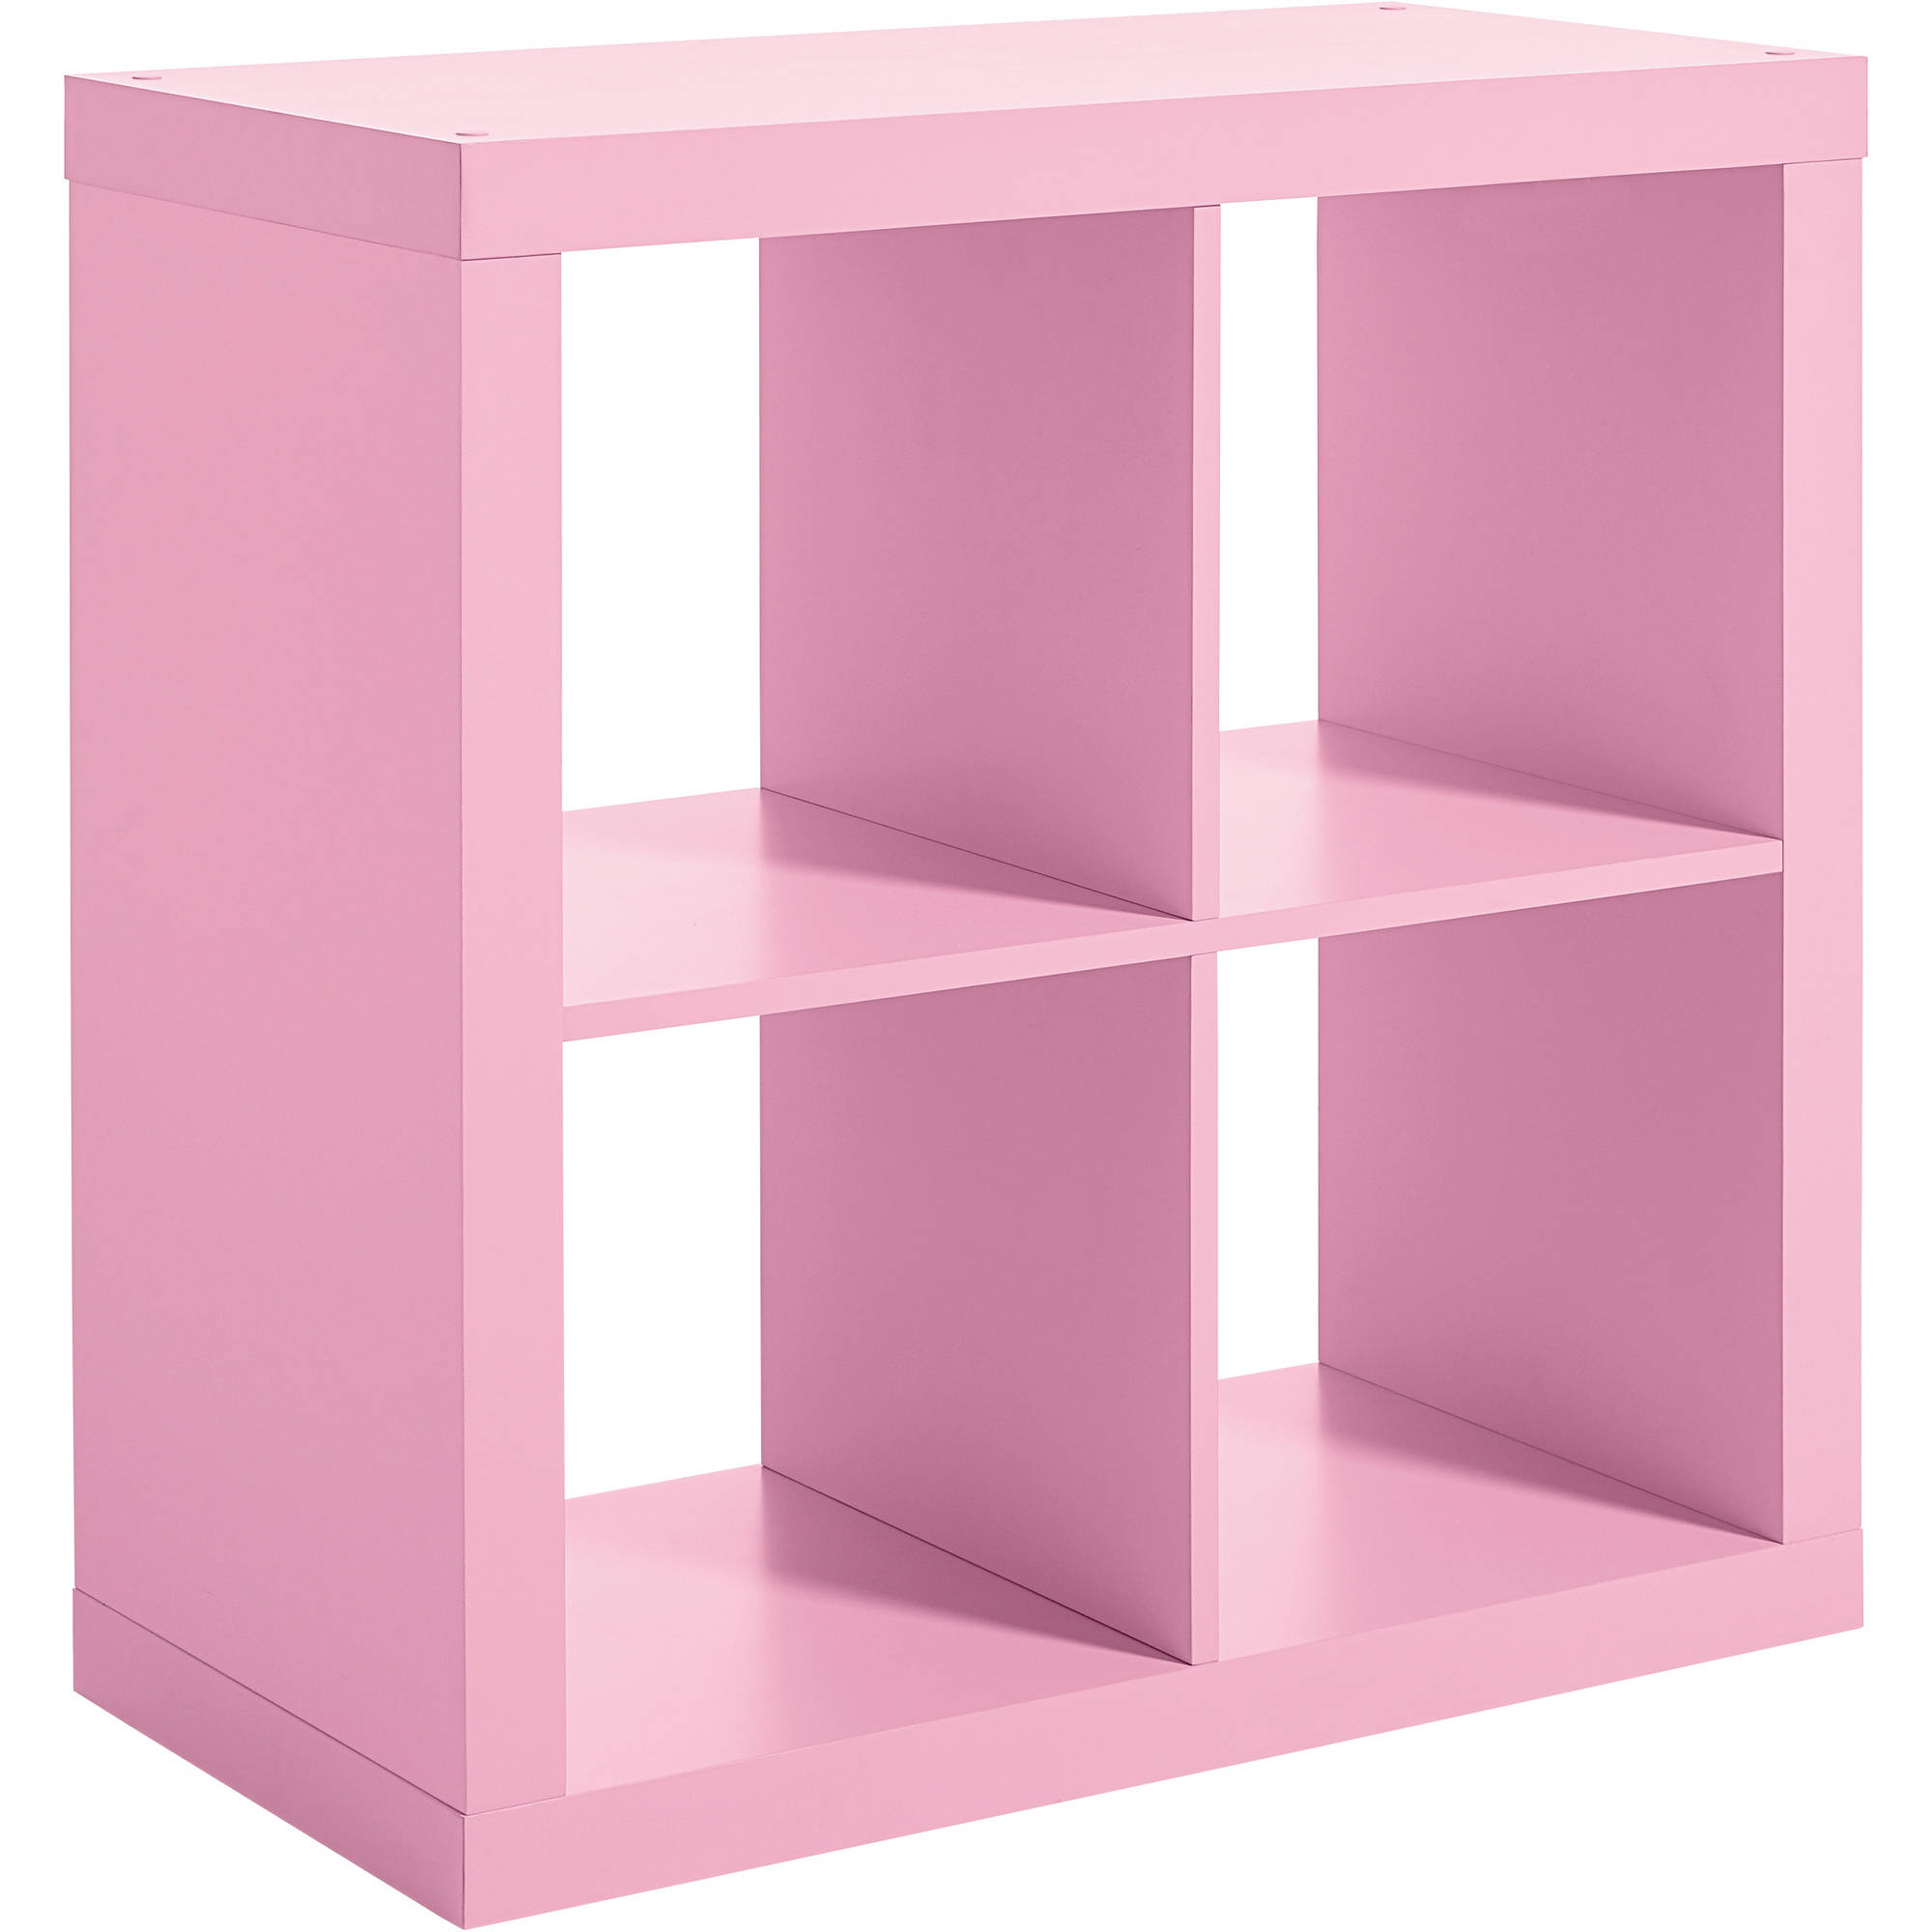 Ikea Cubes Details About 4 Shelf Cube Organizer Pink Square Girls Toys Toy Storage Bin Tv Stand Book Ikea